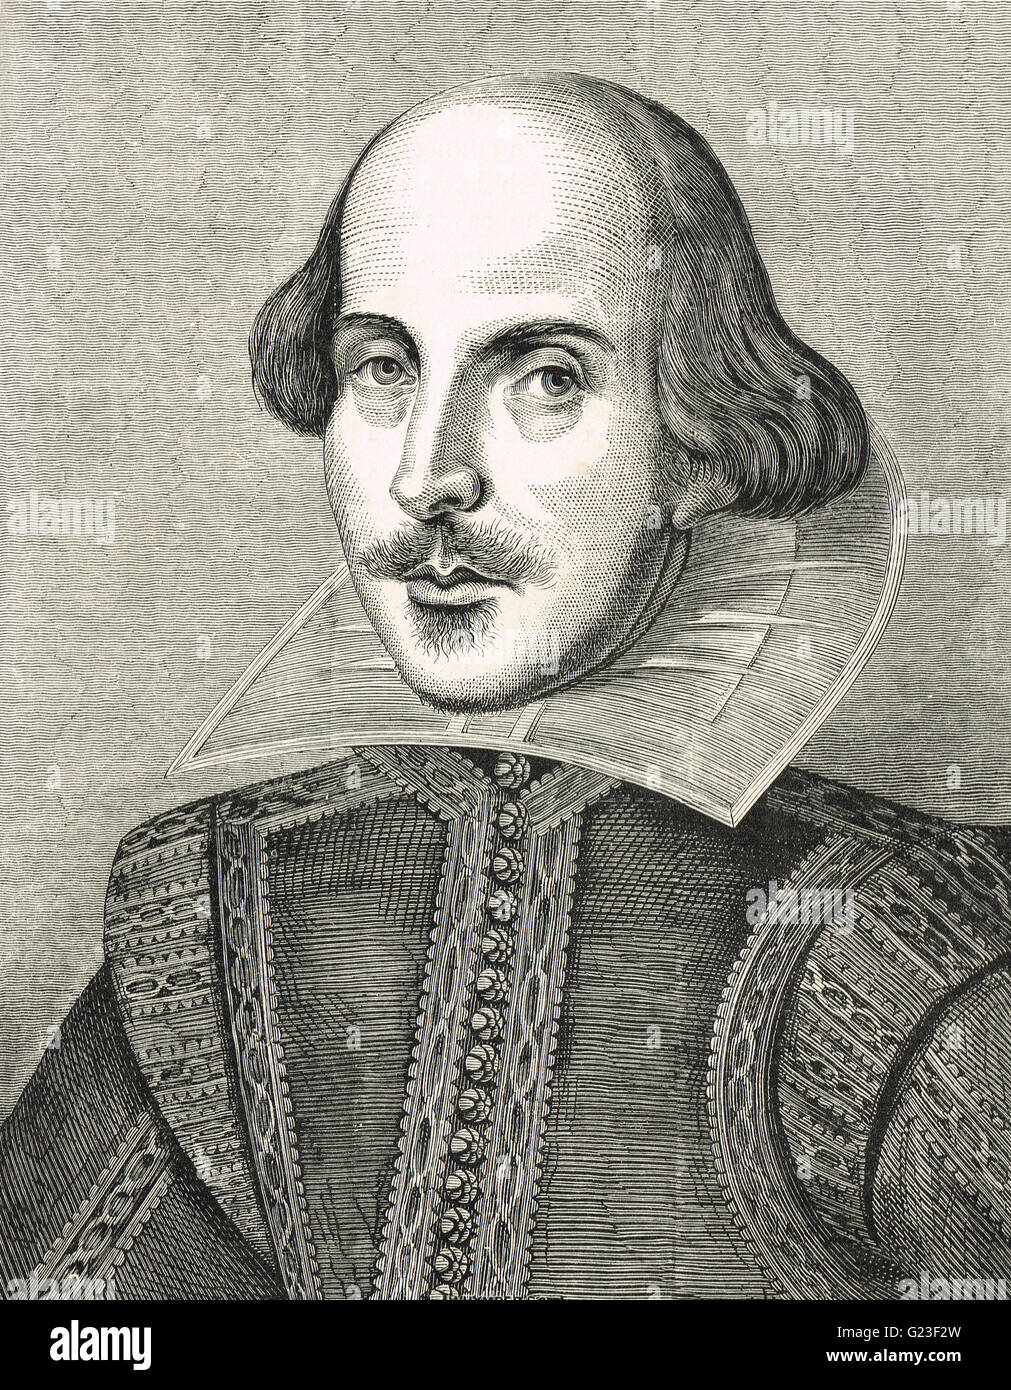 William Shakespeare, The Bard of Avon, 1564-1616.   Engraved Illustration after the portrait by Martin Droeshout - Stock Image